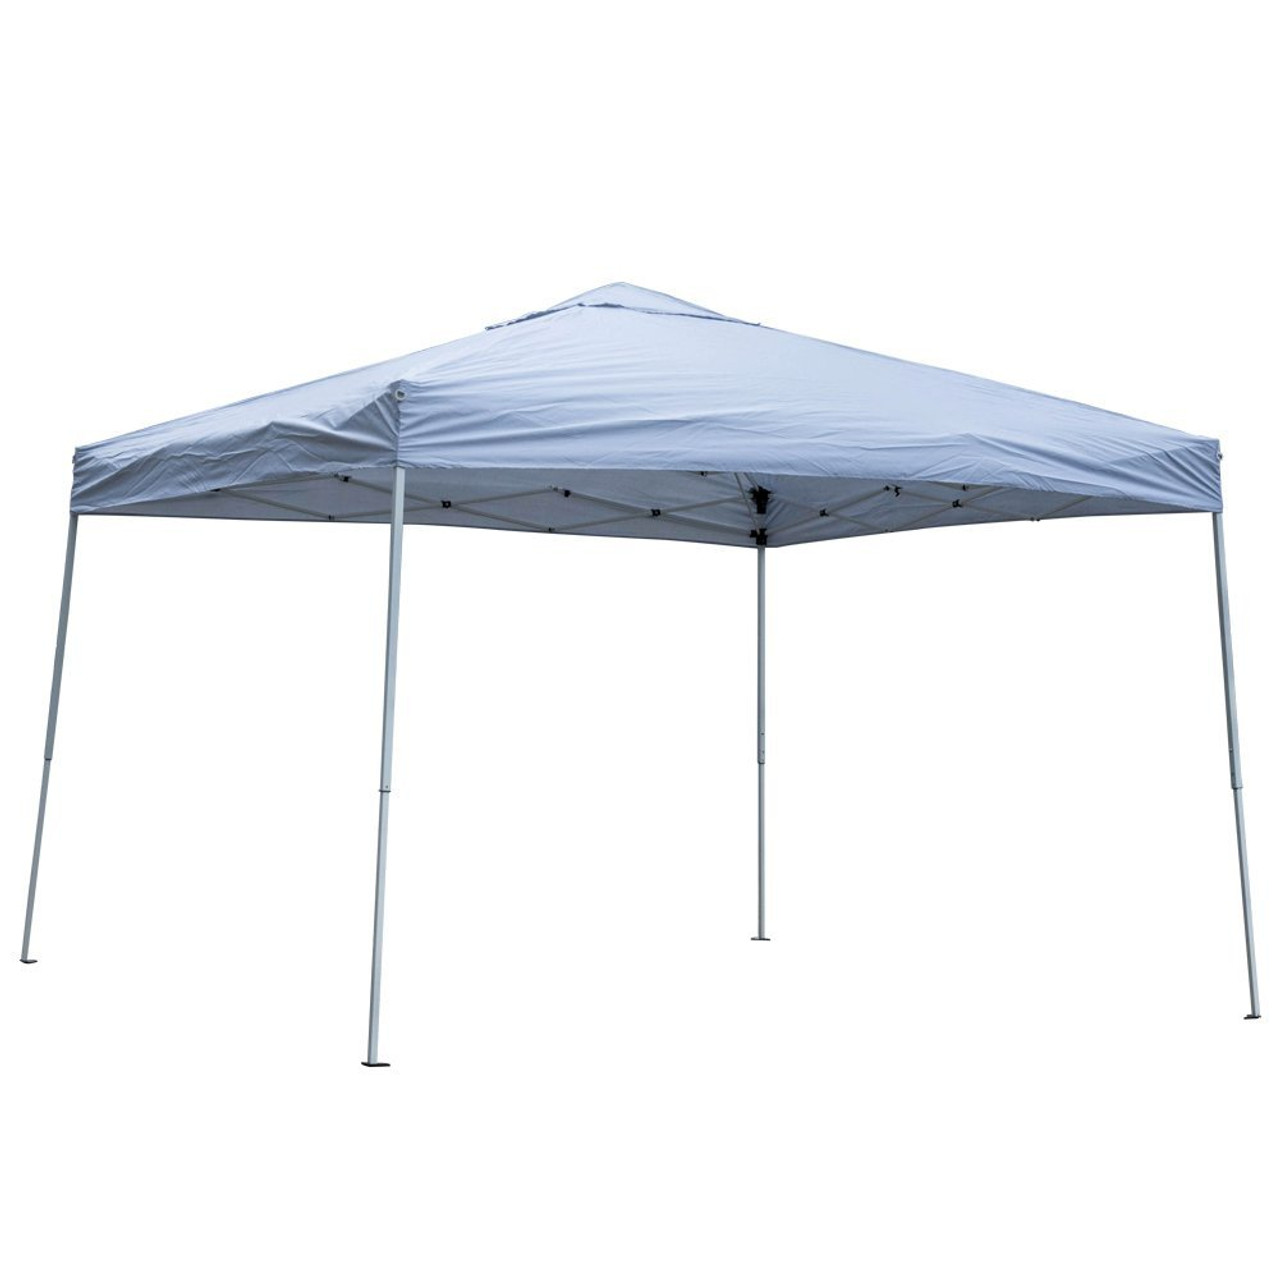 en sheds depot and white premium tents canopy categories awning outdoor outdoors structures portable home p canada the